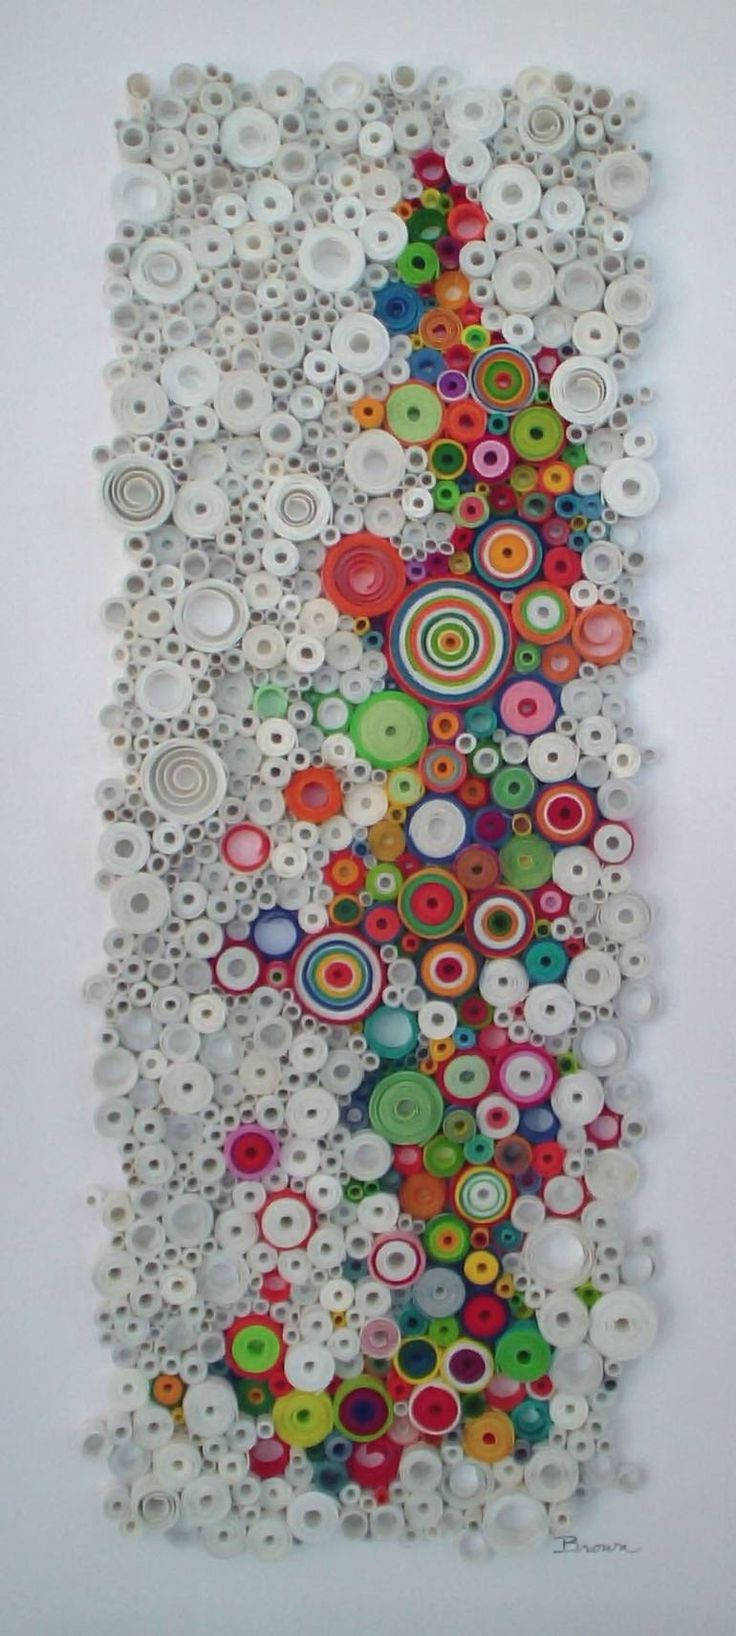 Wall art 100 x 70 - Best 25 3d Wall Art Ideas On Pinterest Paper Wall Art Paper Cut Out Art And Rolled Paper Art